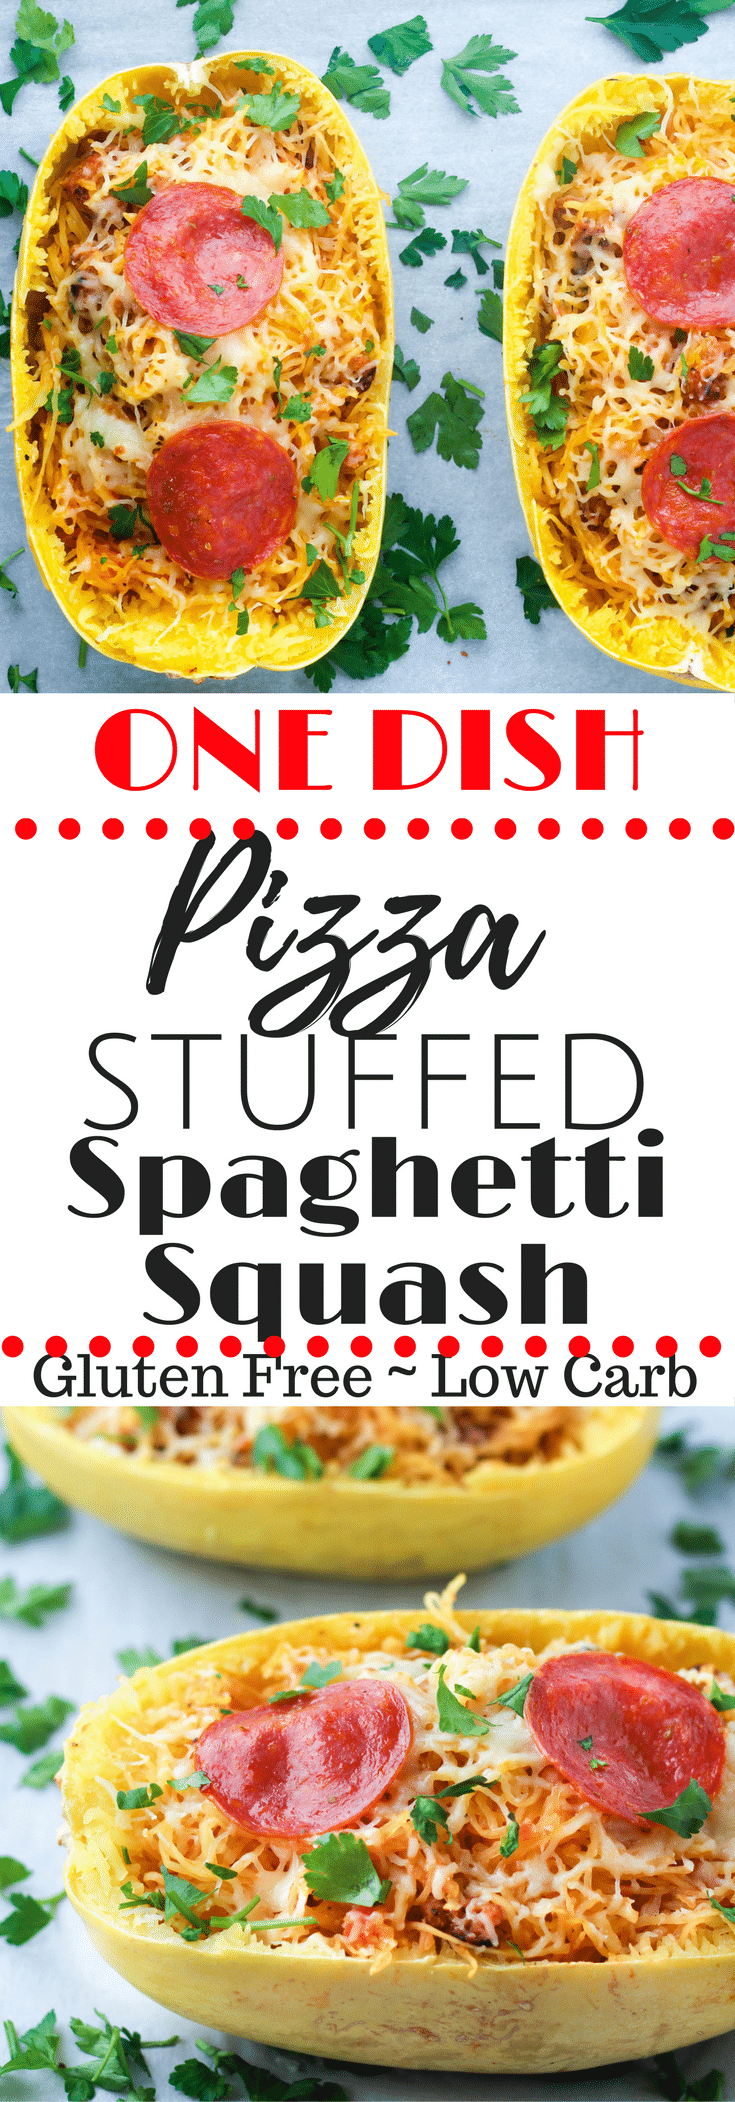 Craving pizza?  This pizza stuffed spaghetti squash is full of all the pizza flavor & made in ONE PAN!  Gluten Free, Low Carb, & High Pro